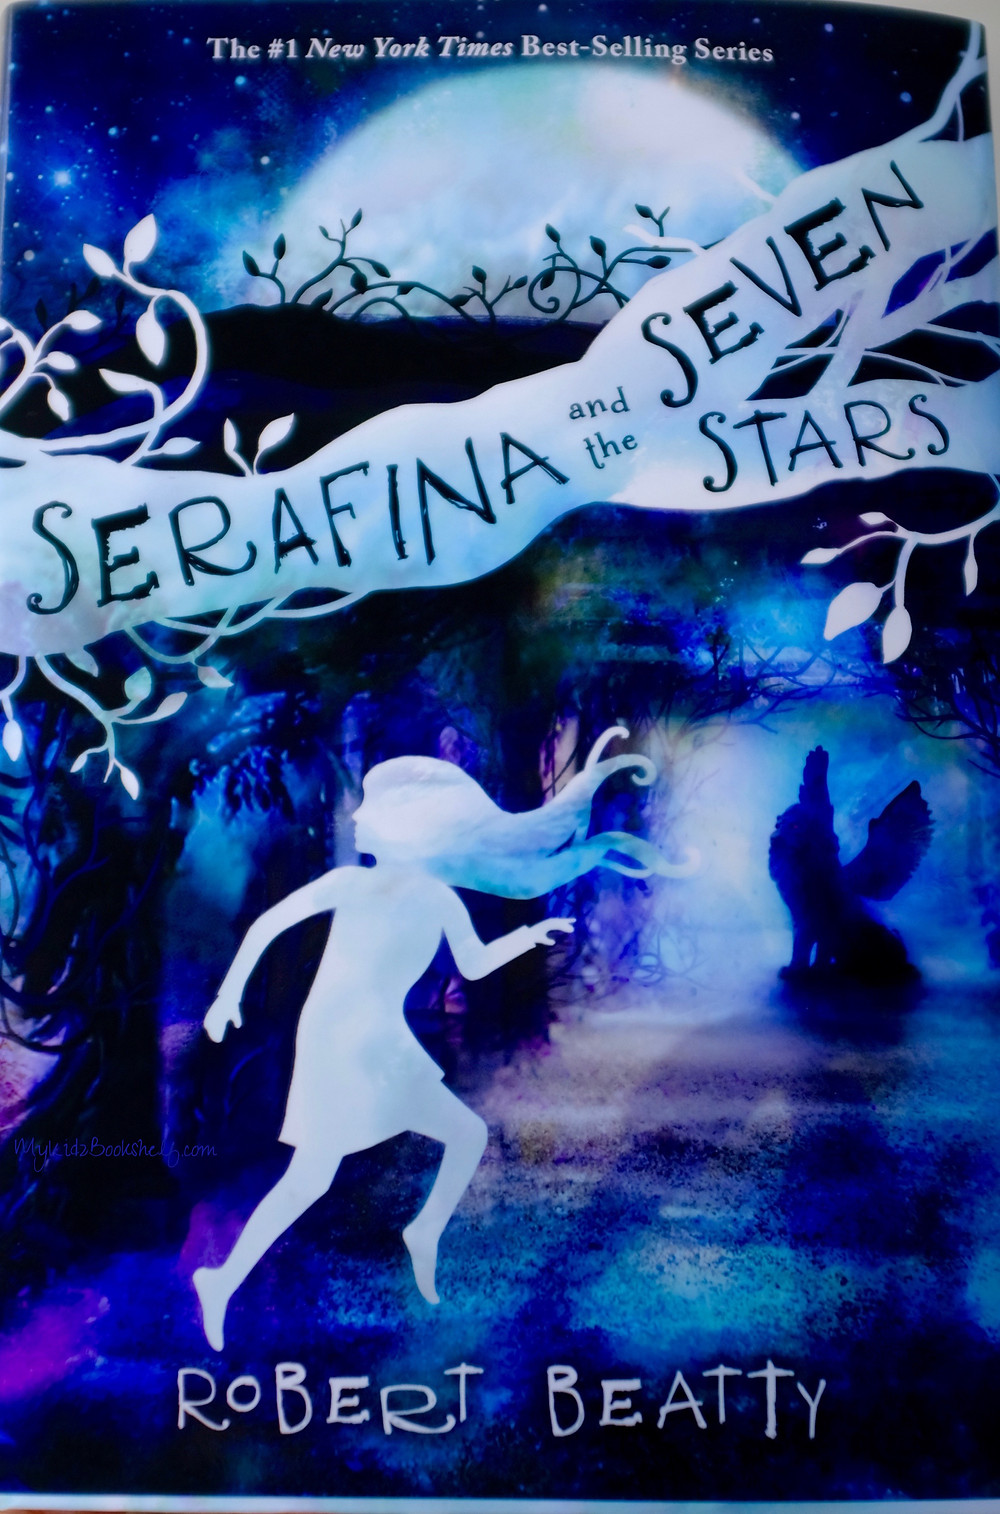 Serafina-and-the-Seven-Stars-cover-art-illustration-by-Alexander-Jansson